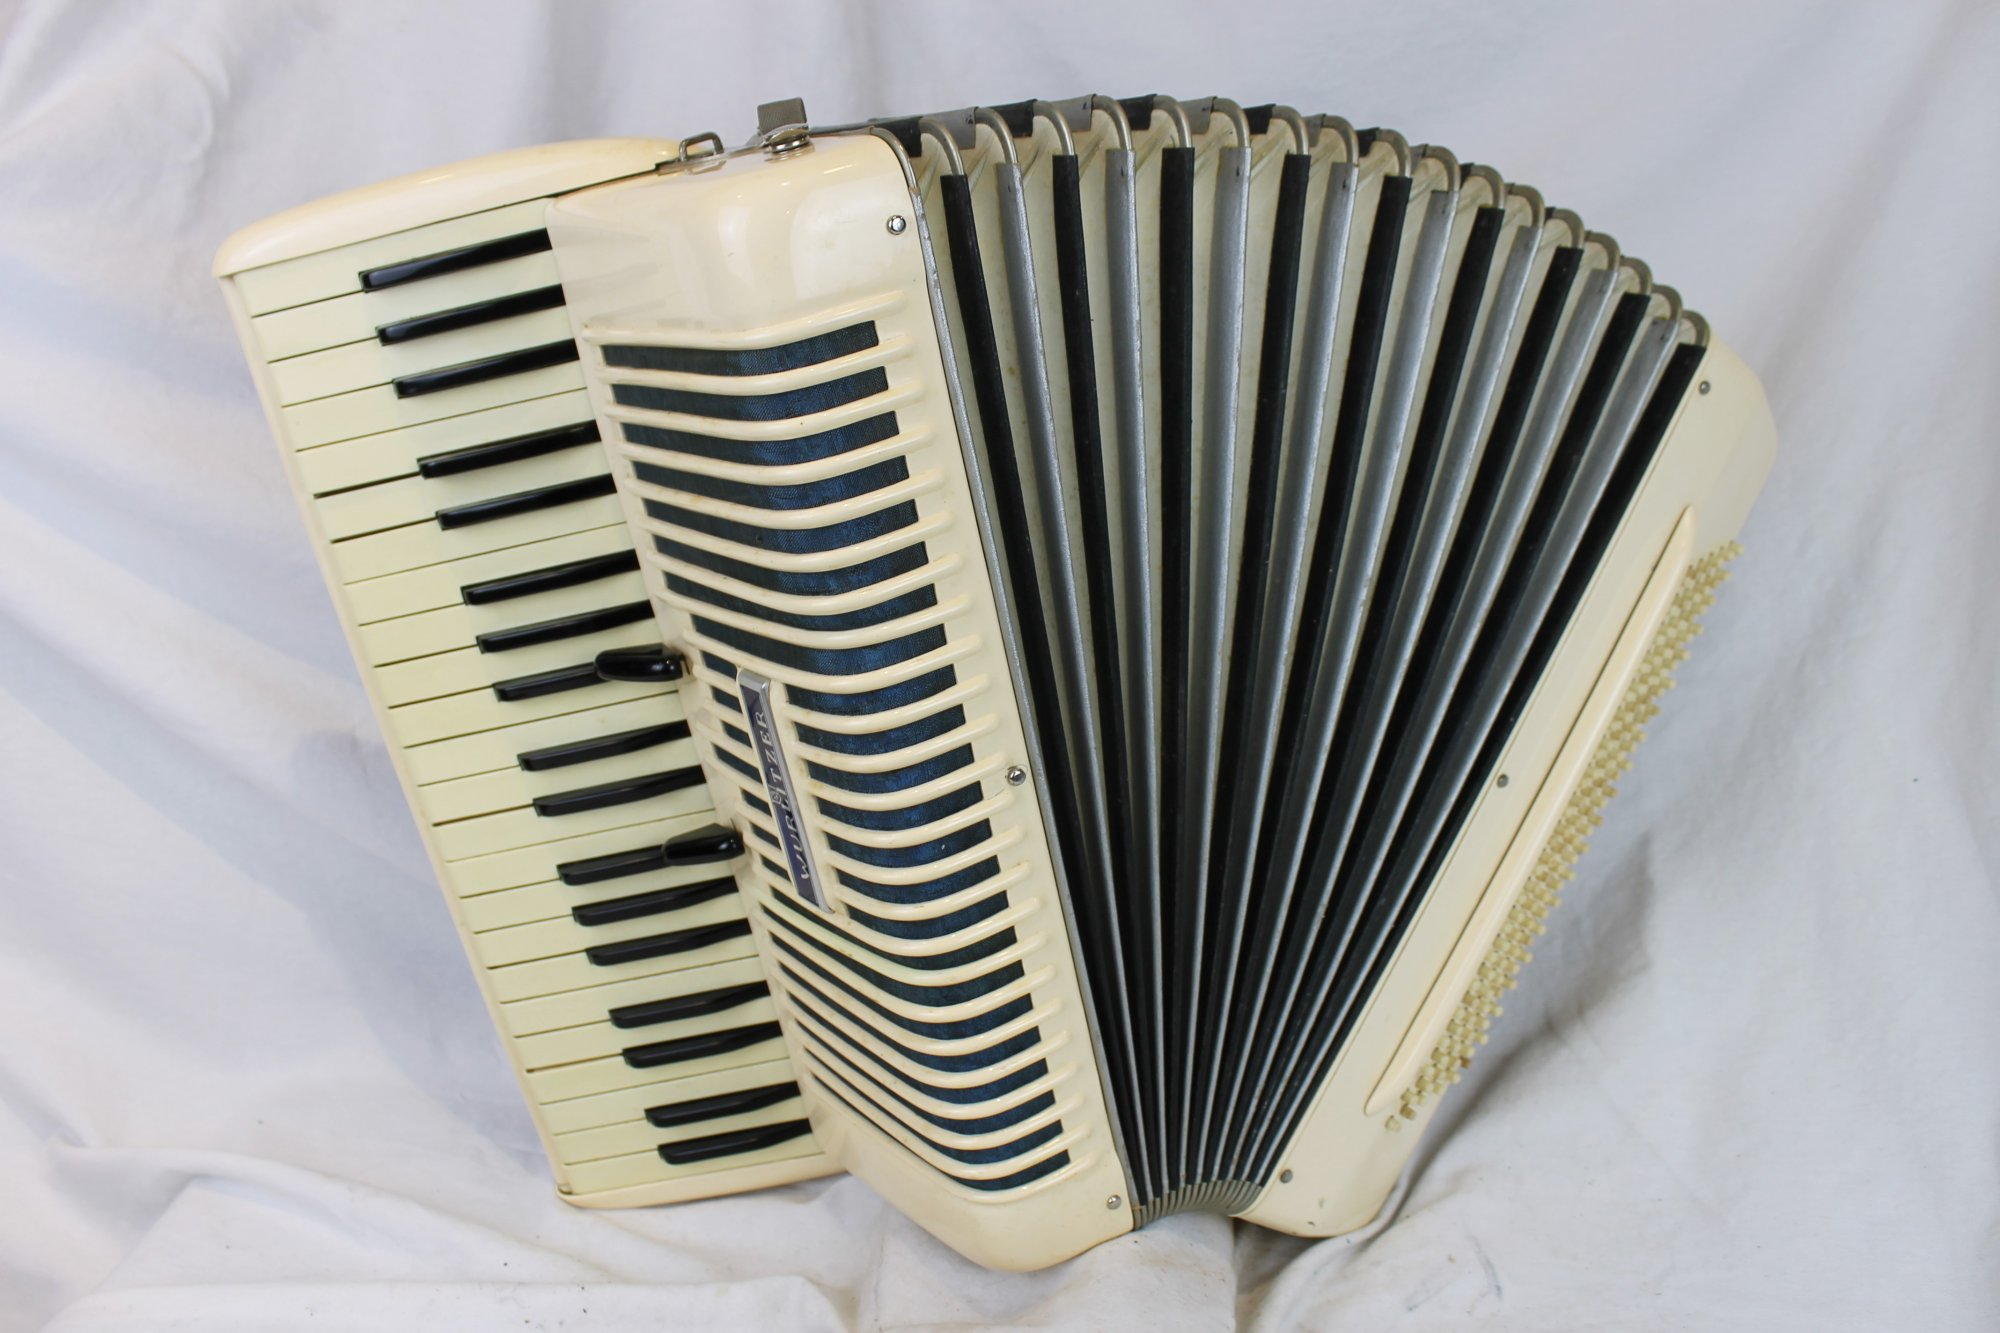 6142 - Rose Wurlitzer Piano Accordion LMM 41 120 - For Parts or Repair